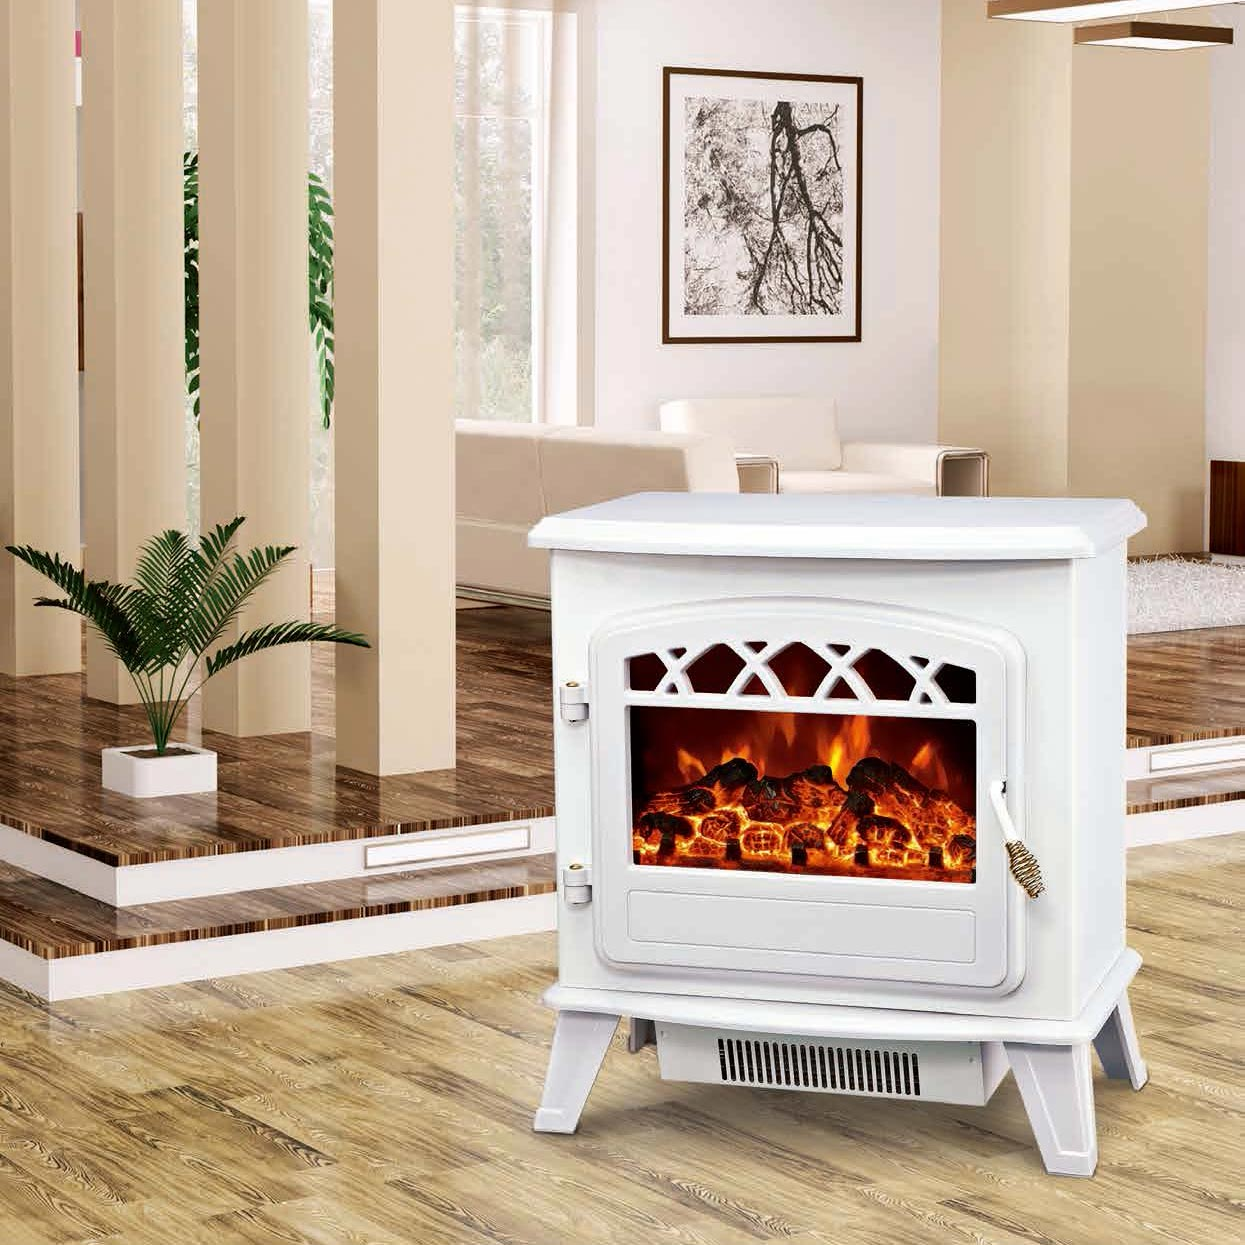 electric fireplace heater log burning flame effect antique electric stove ND-181ML cheap room heater